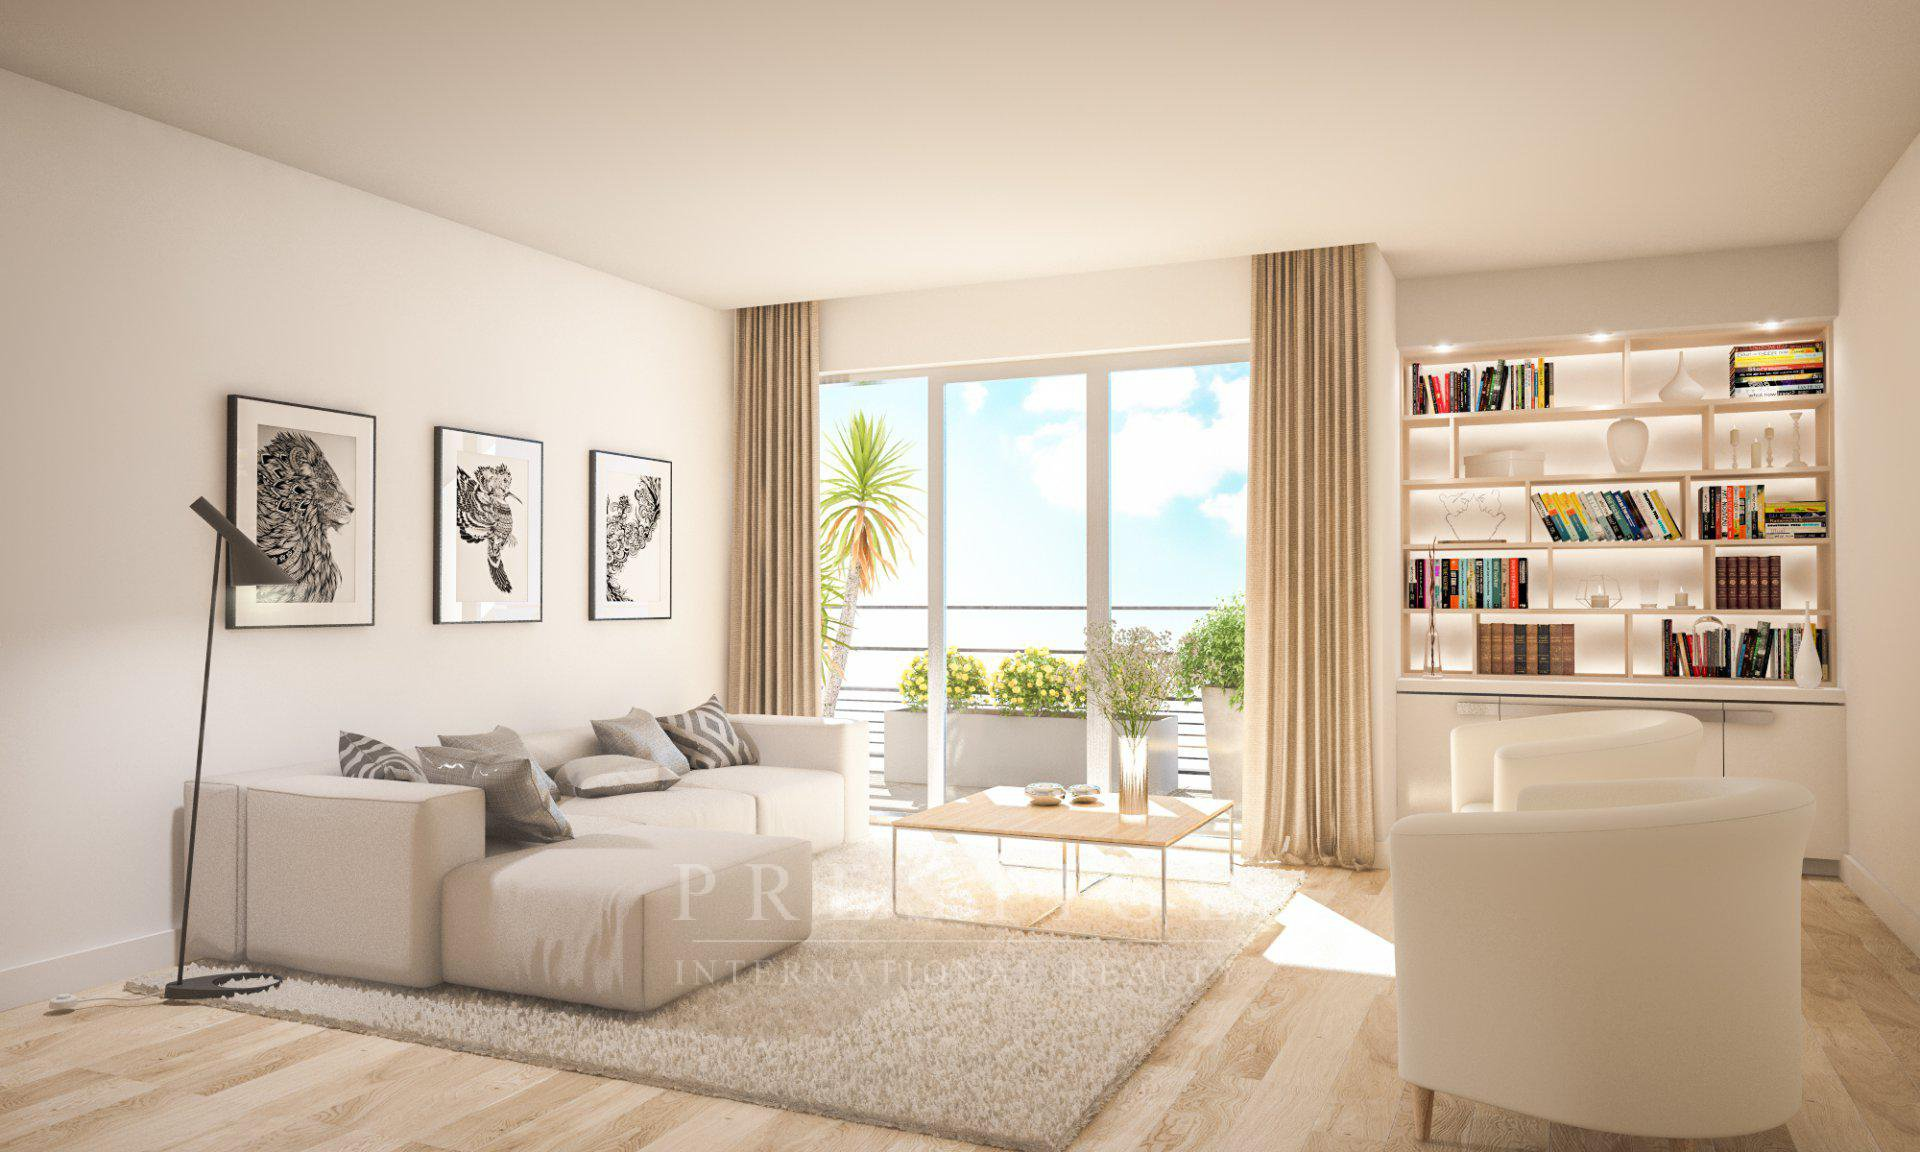 1-bedroom apartment in Antibes center